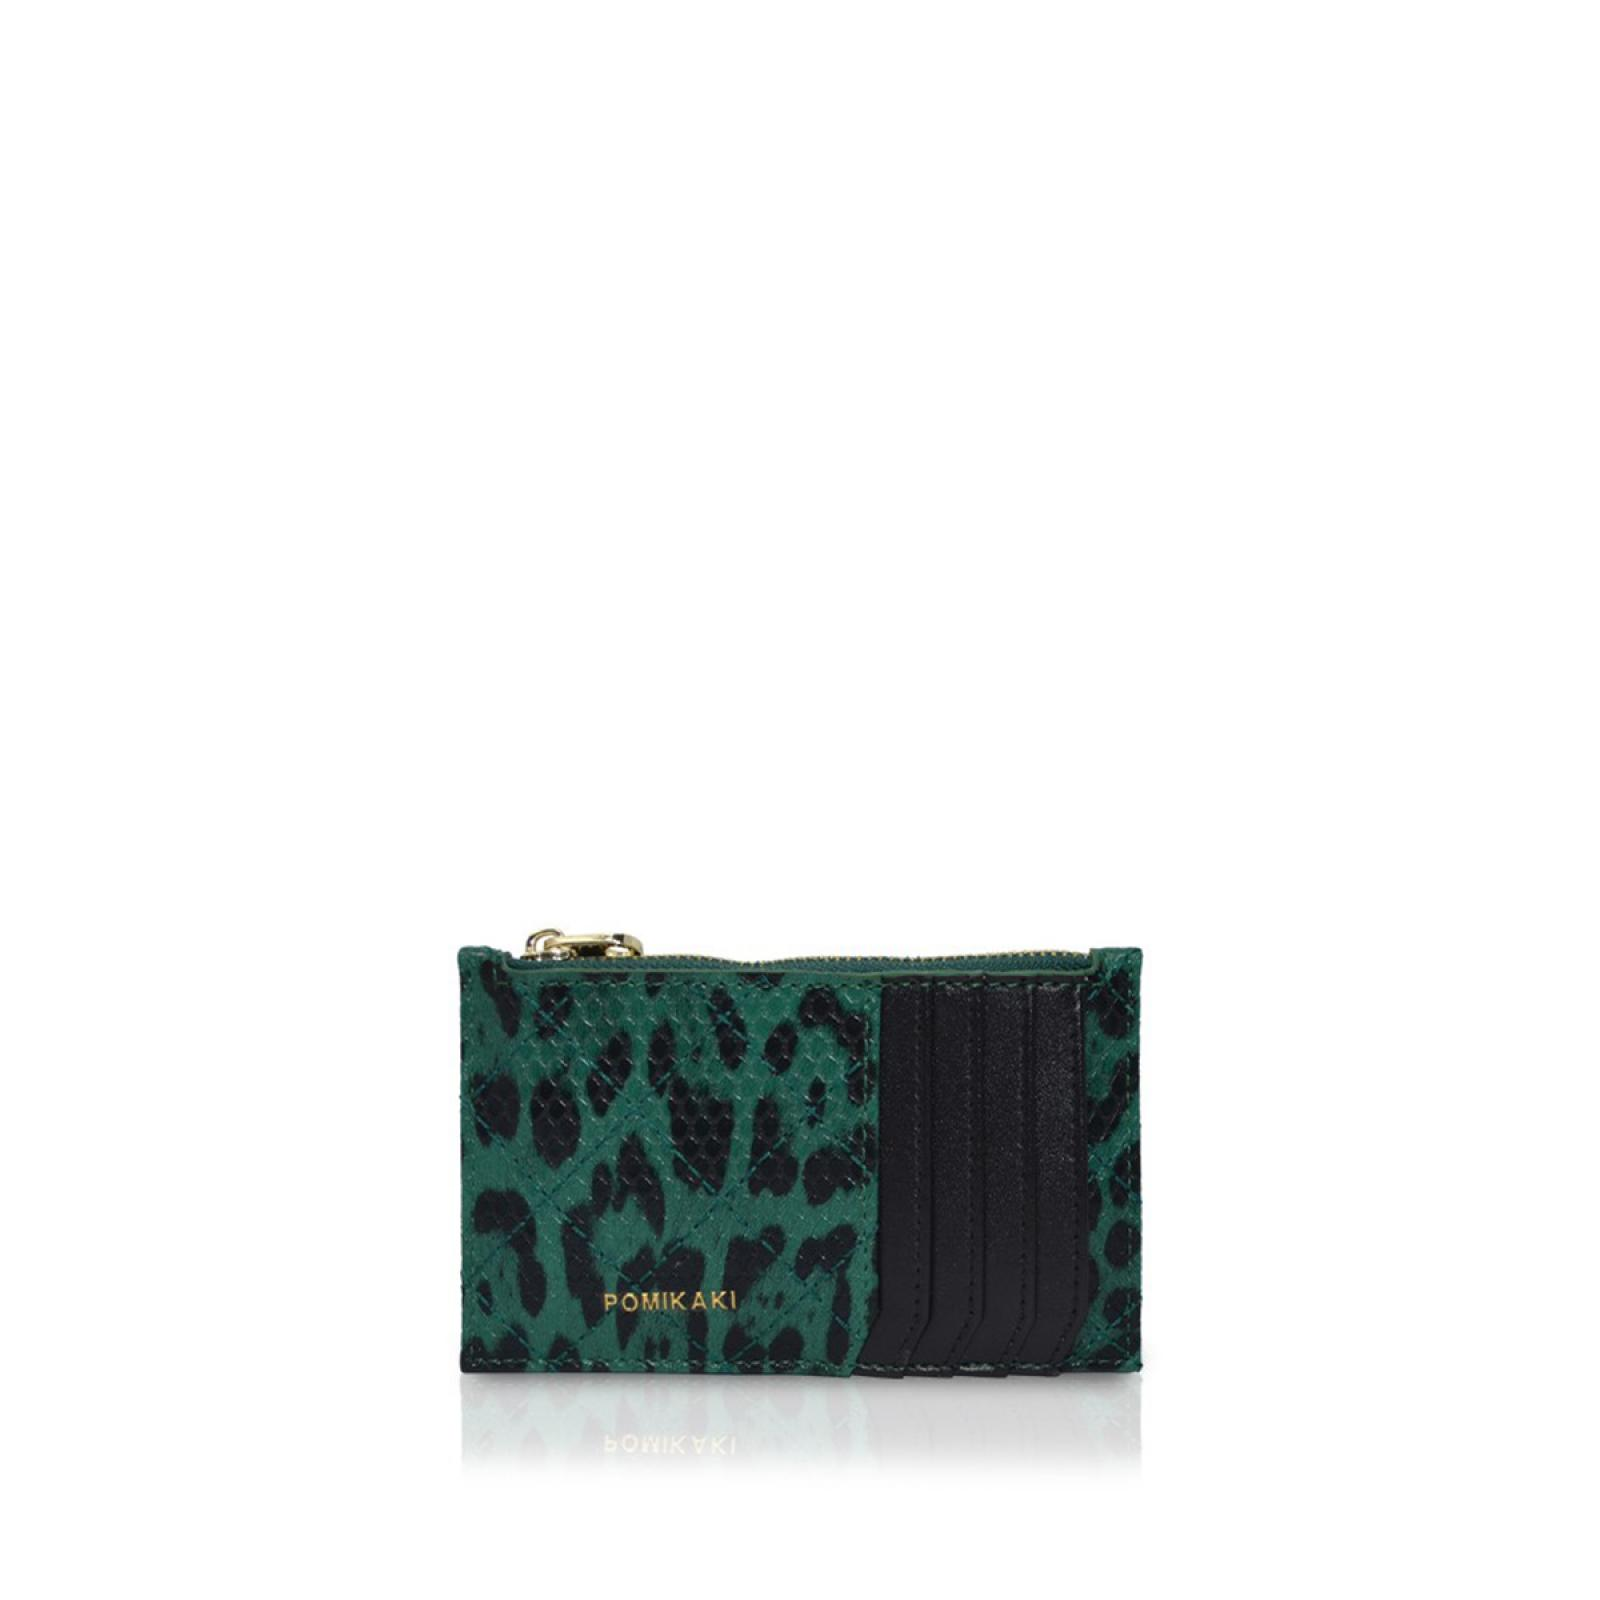 Pomikaki Credit card holder Vera Animalier - 1